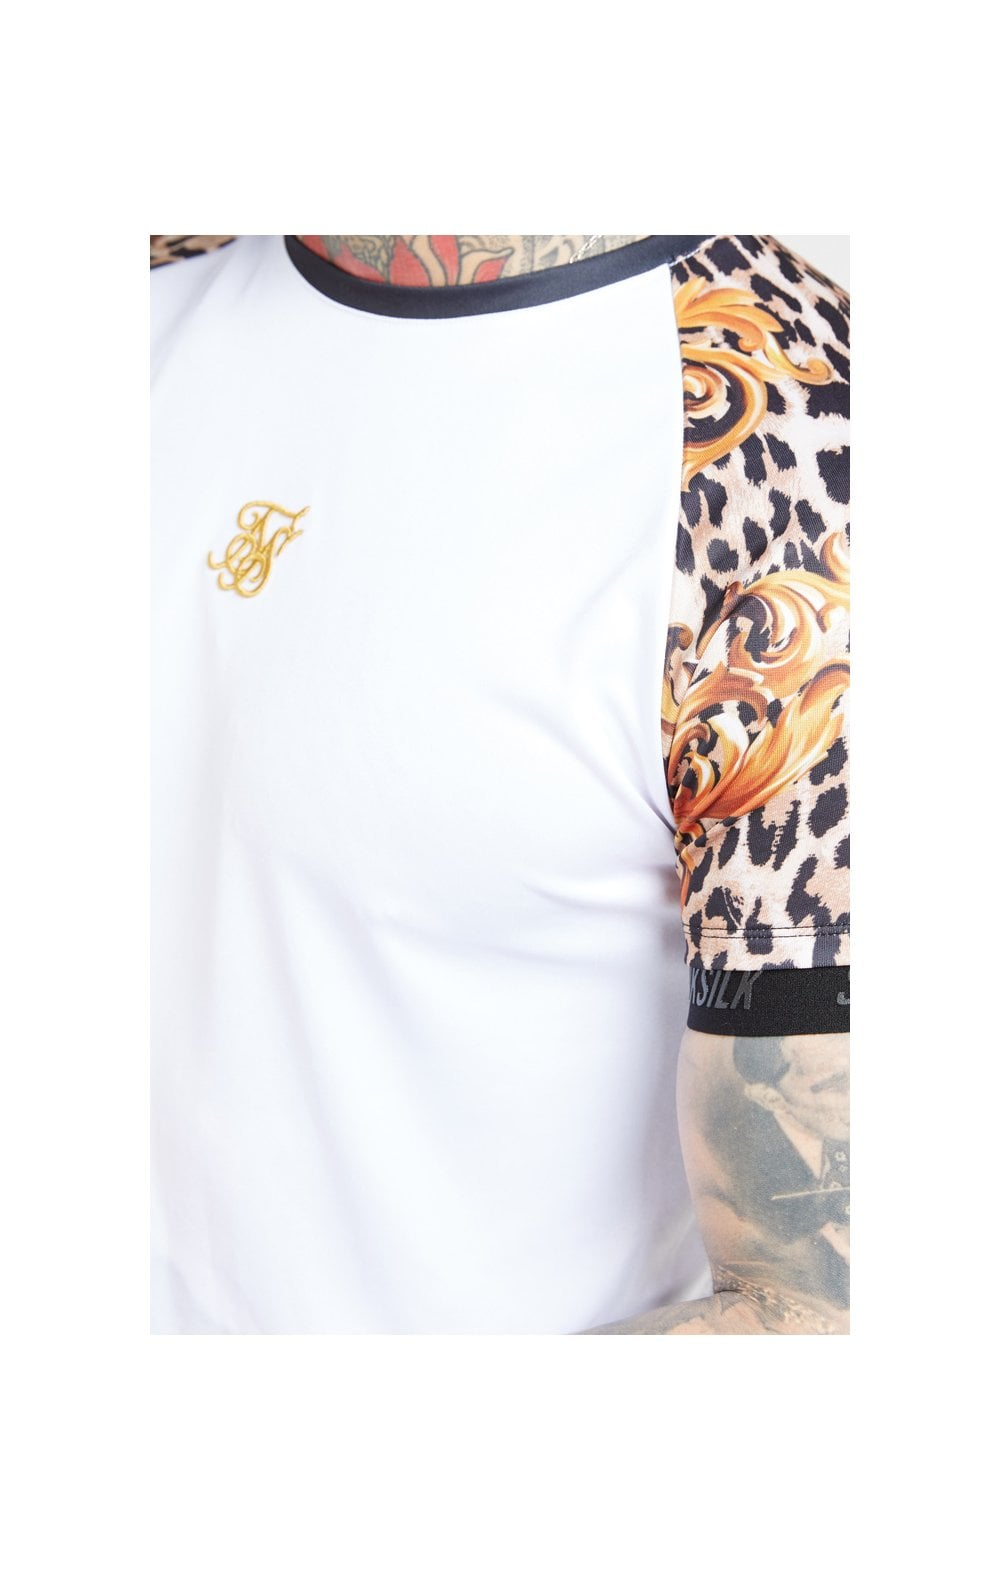 Load image into Gallery viewer, SikSilk S/S Curved Hem Raglan Tech Tee - White & Floral Leopard